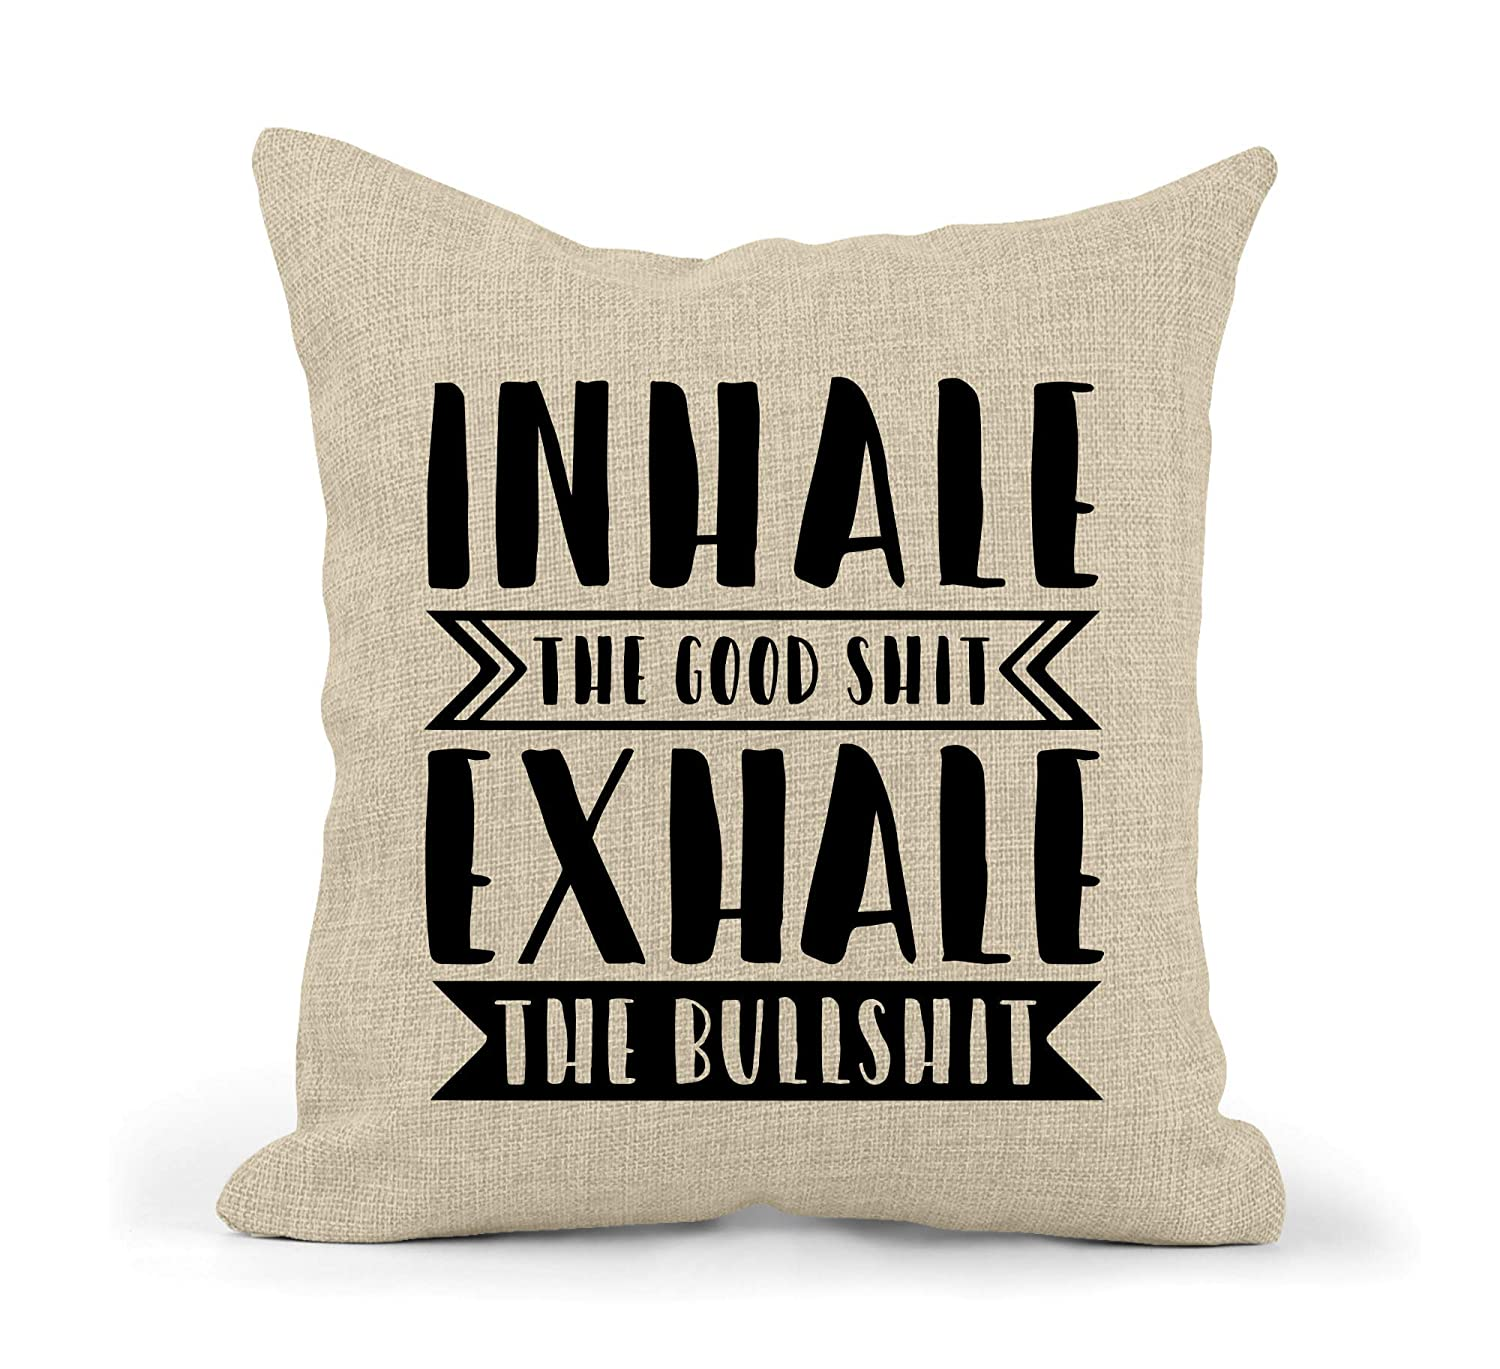 Inhale The Good Shit Exhale The Bullshit Burlap Pillow Cover//Yoga Throw Pillow Cover//Rustic Decor Pillowcase//Farm House Pillowcase//Faux Burlap Pillow Cover//Cover Only